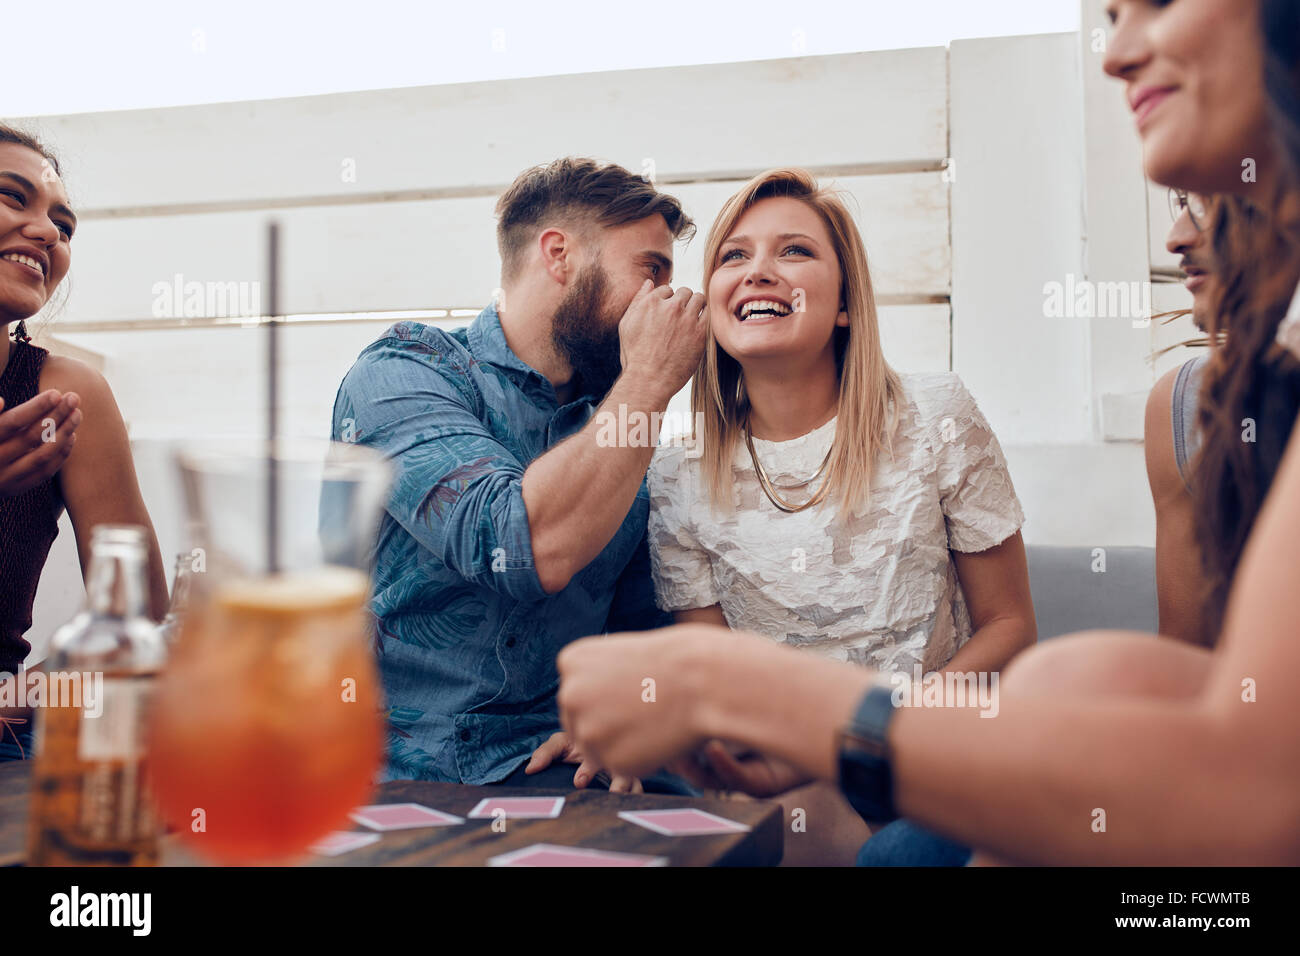 Young people sitting together in a party. Man whispering something in woman's ears. Sharing a secret. - Stock Image